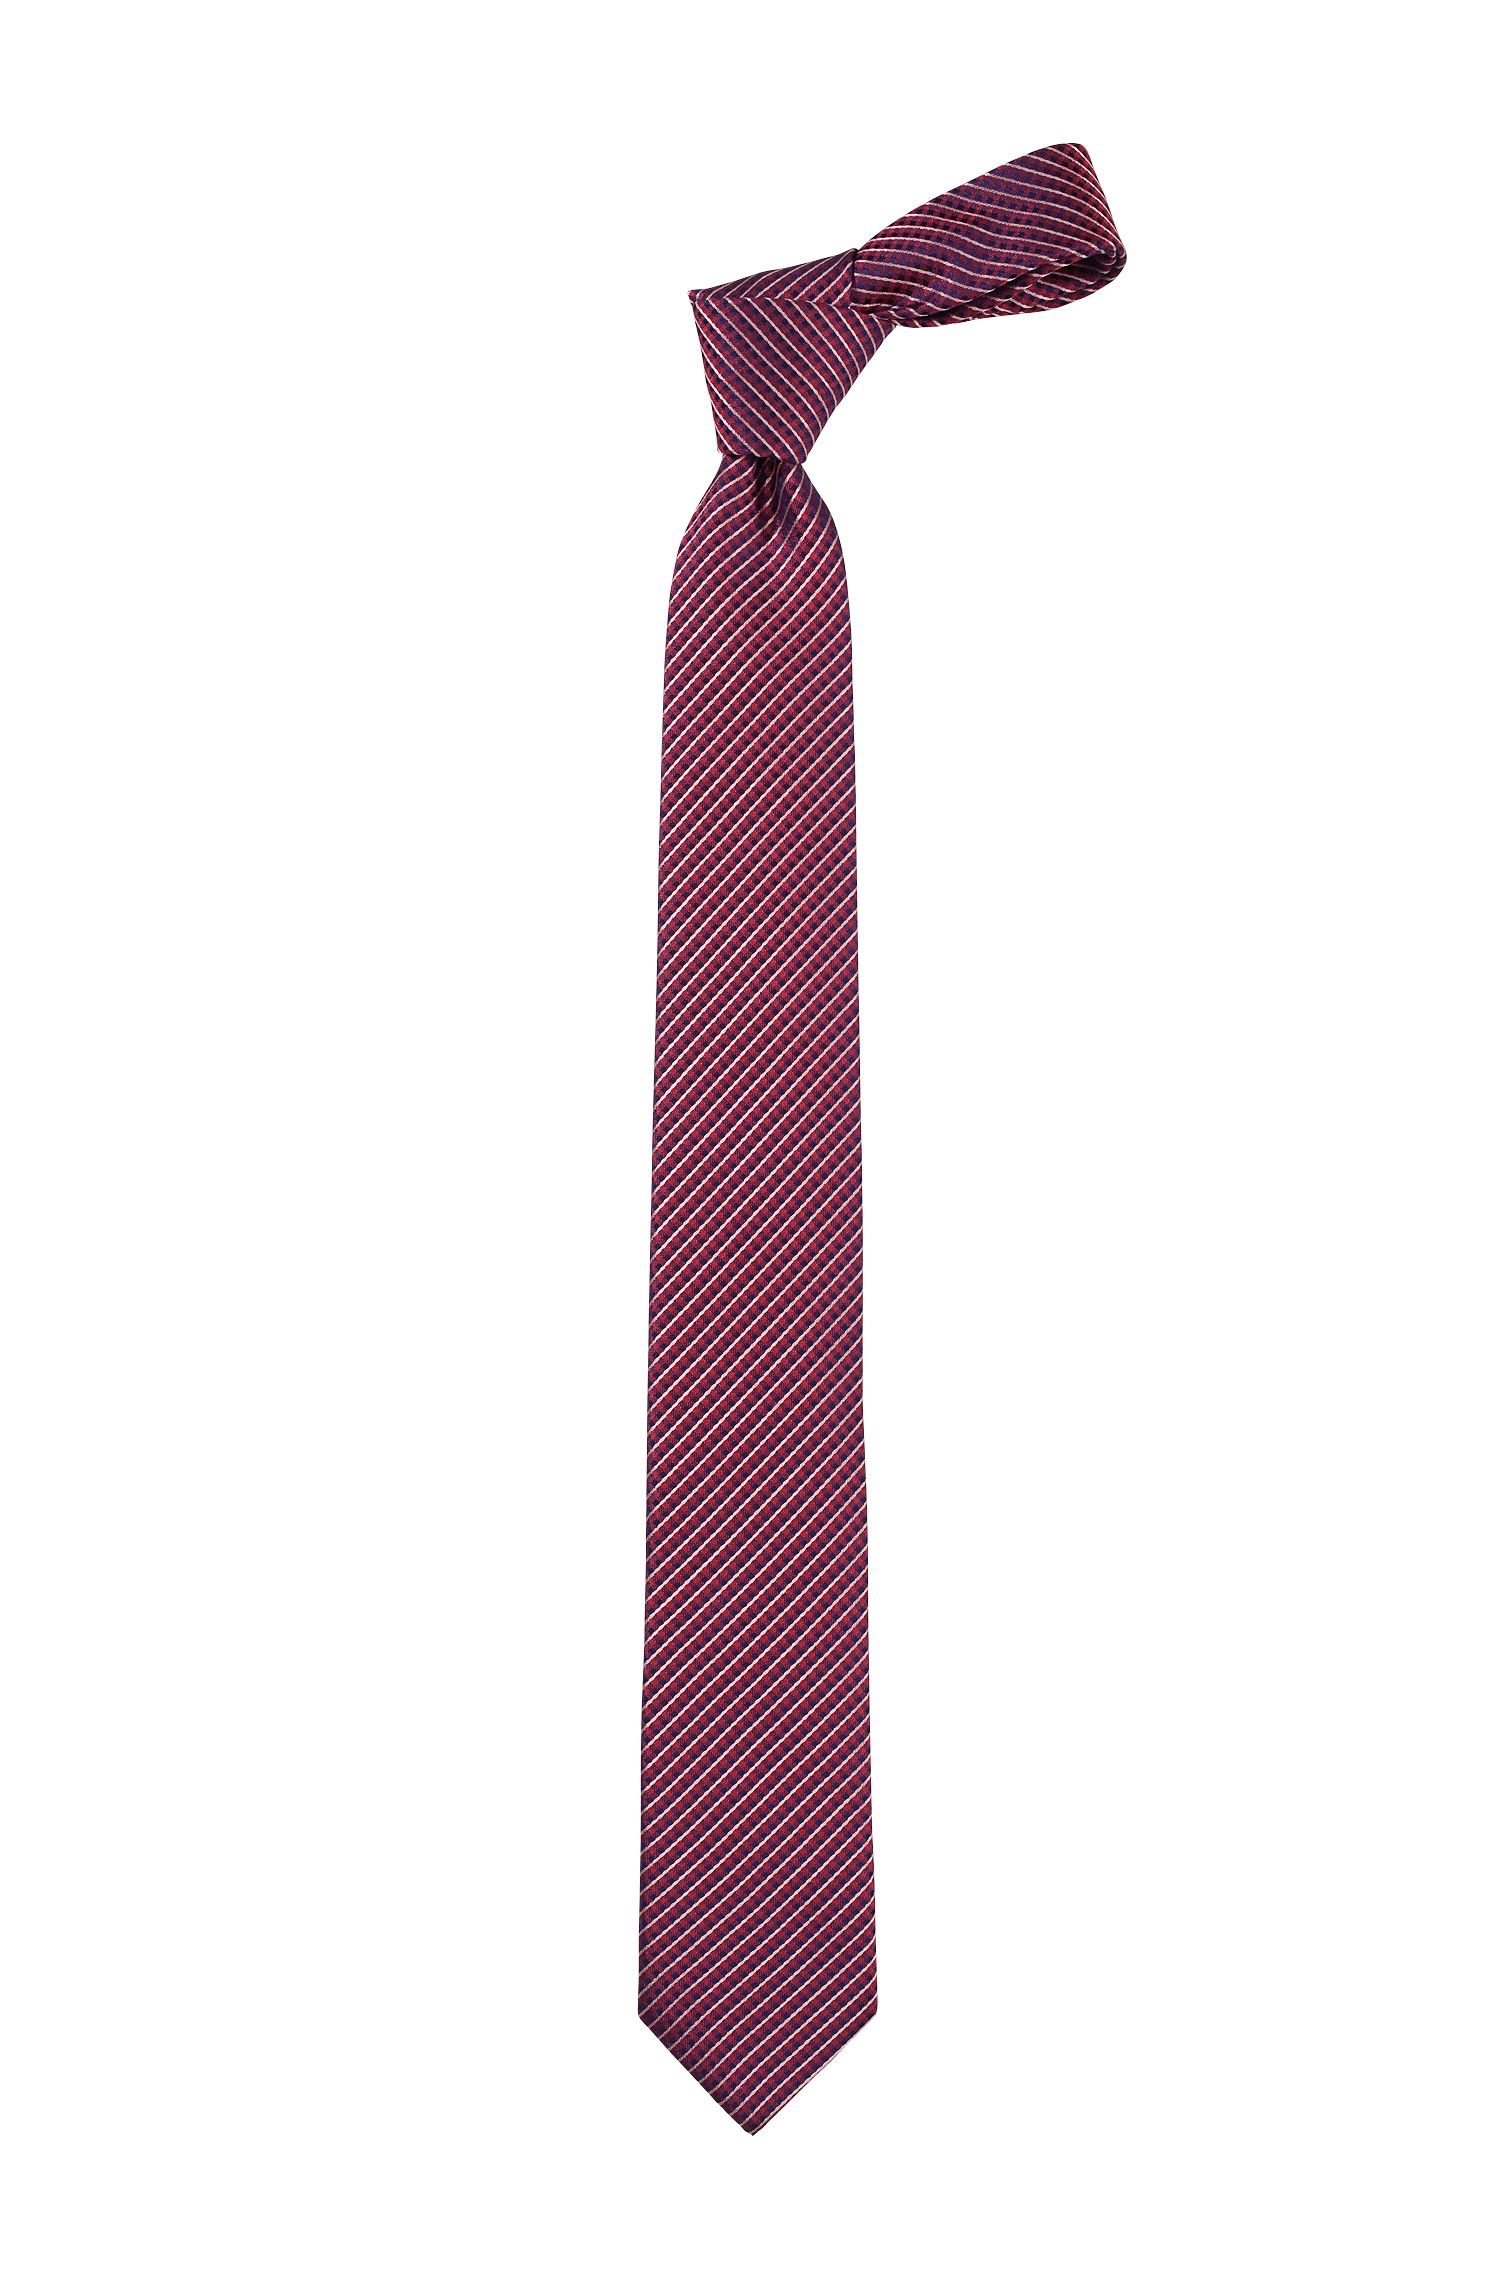 Cravate en pure soie, Tie 6 cm